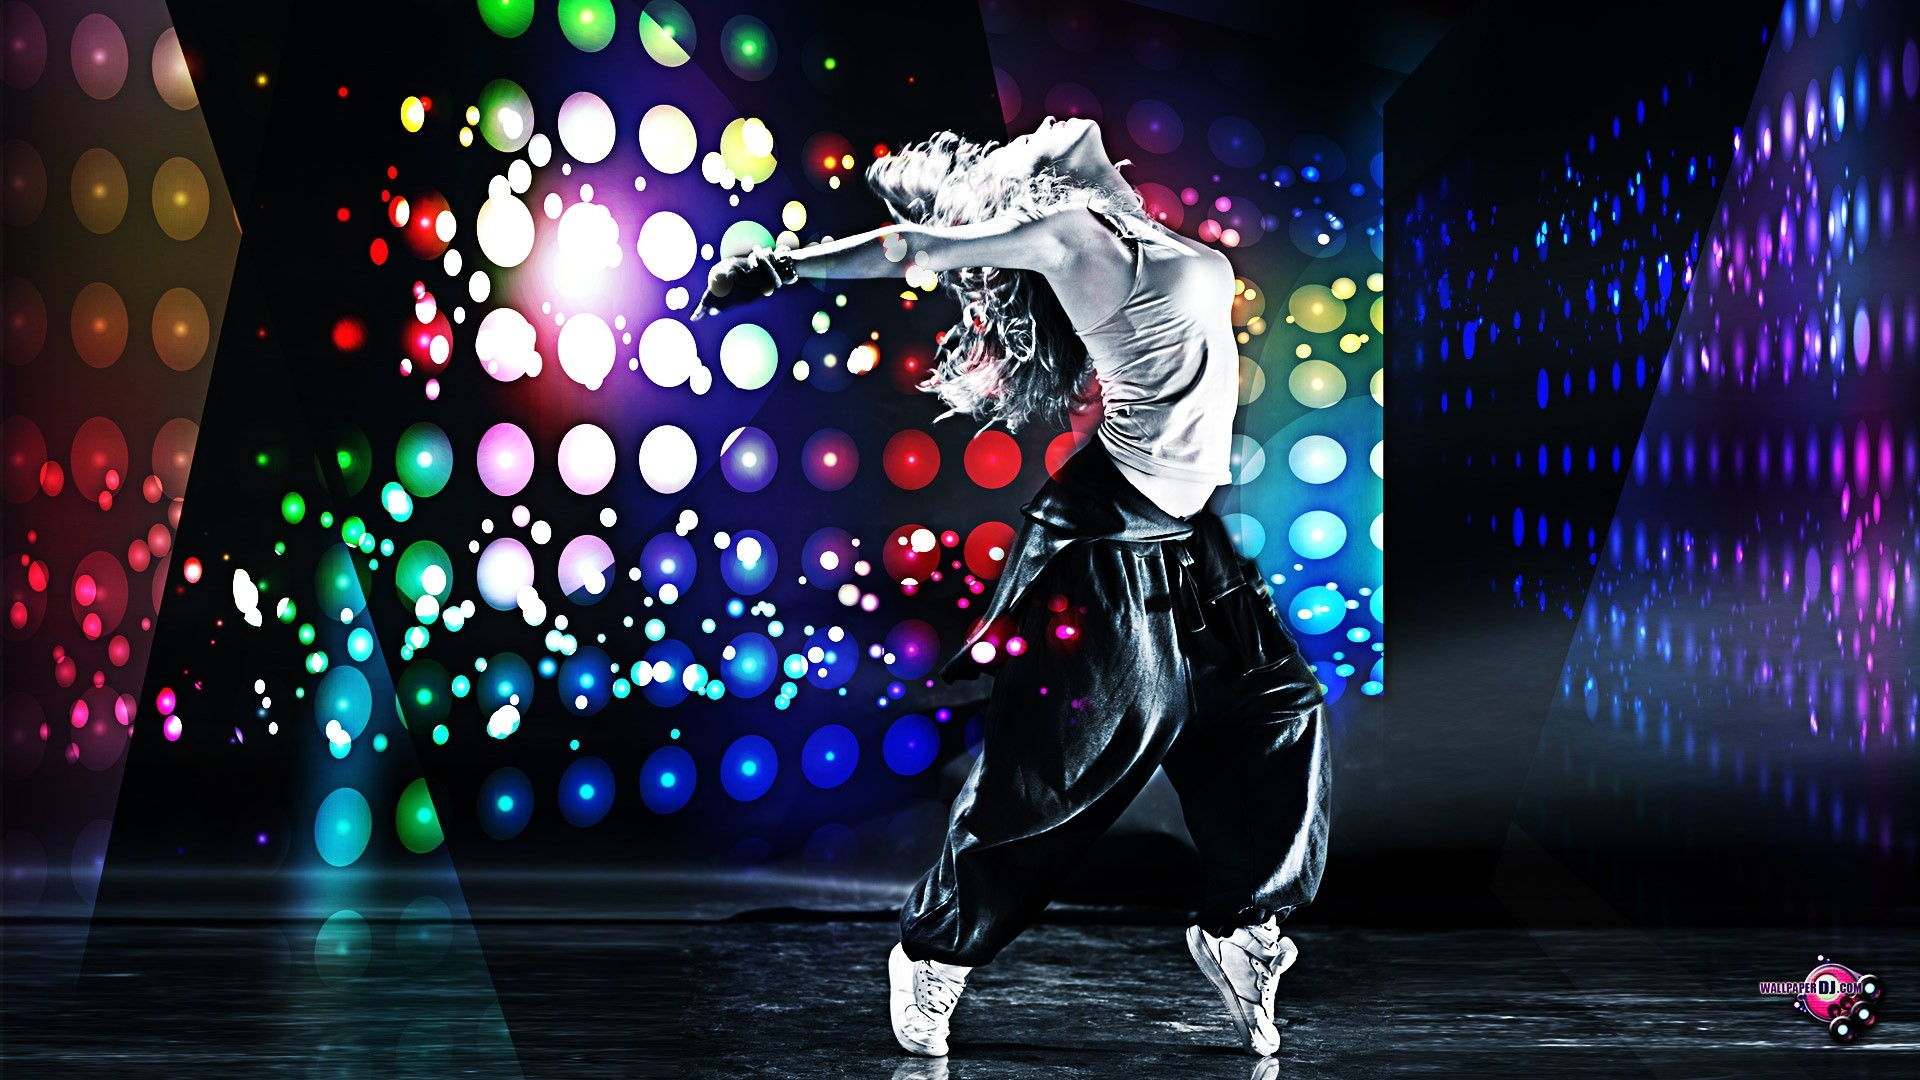 Wallpaper Of Dance